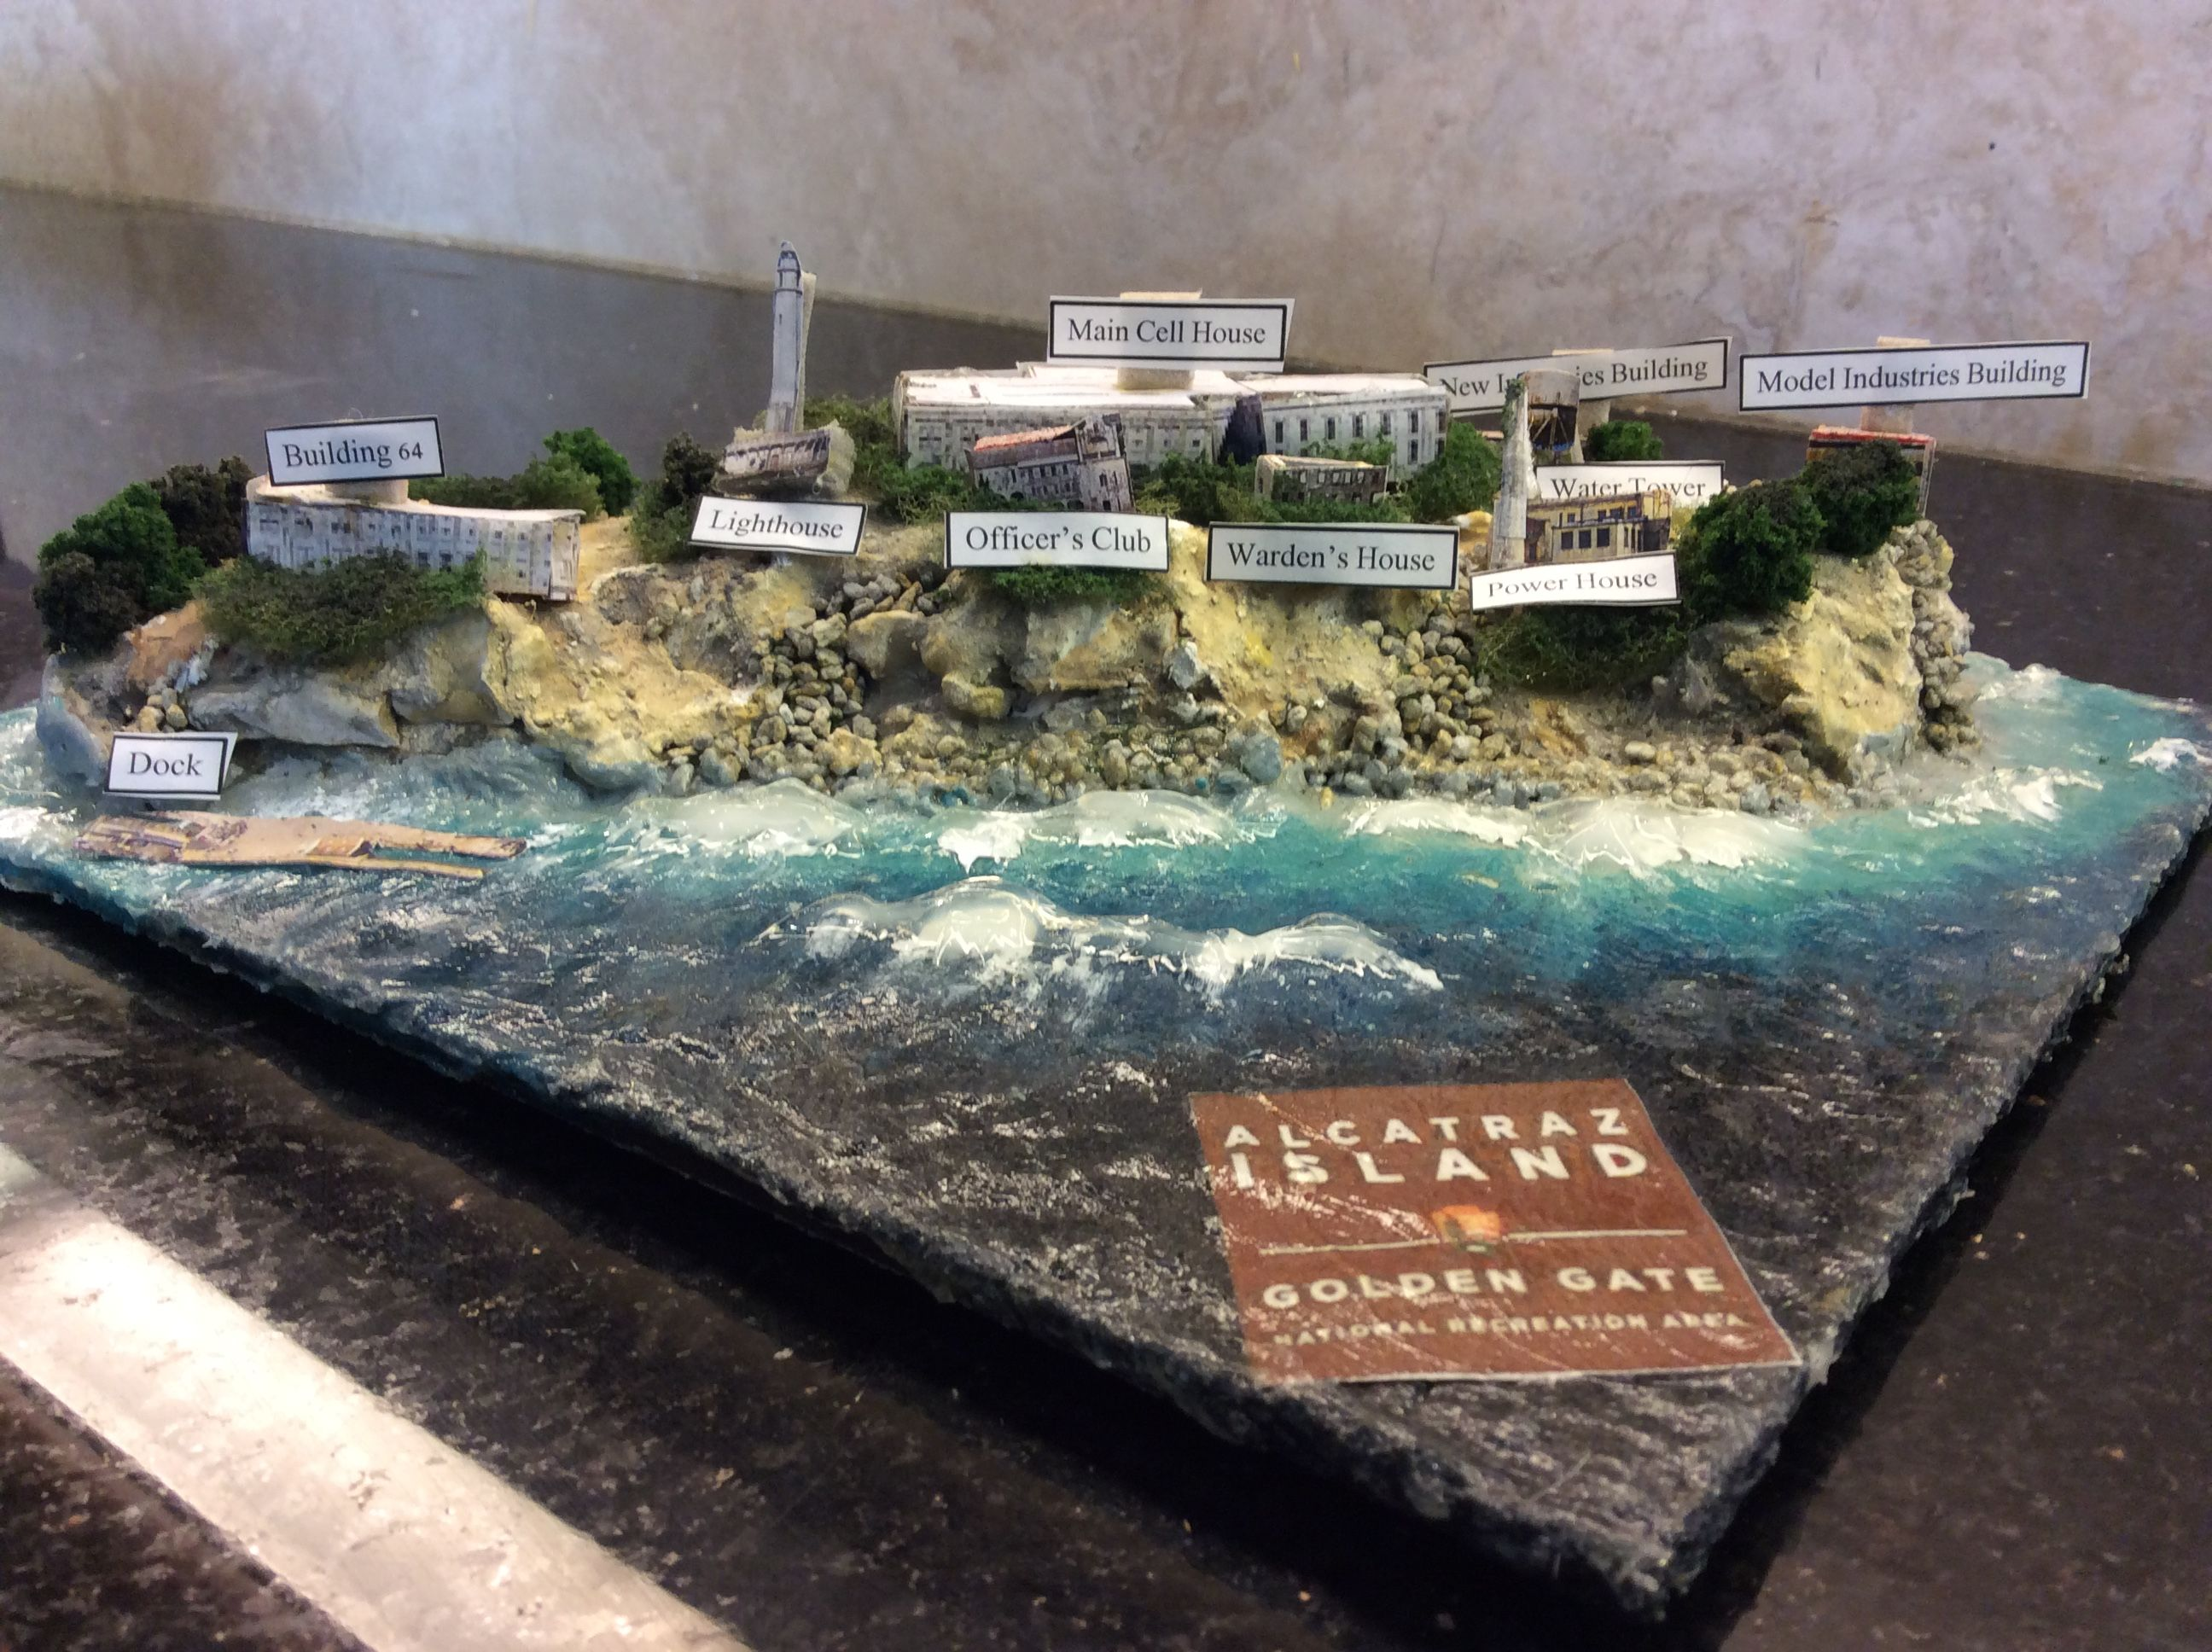 Alcatraz Island Model Alcatraz Island Alcatraz Model Industry